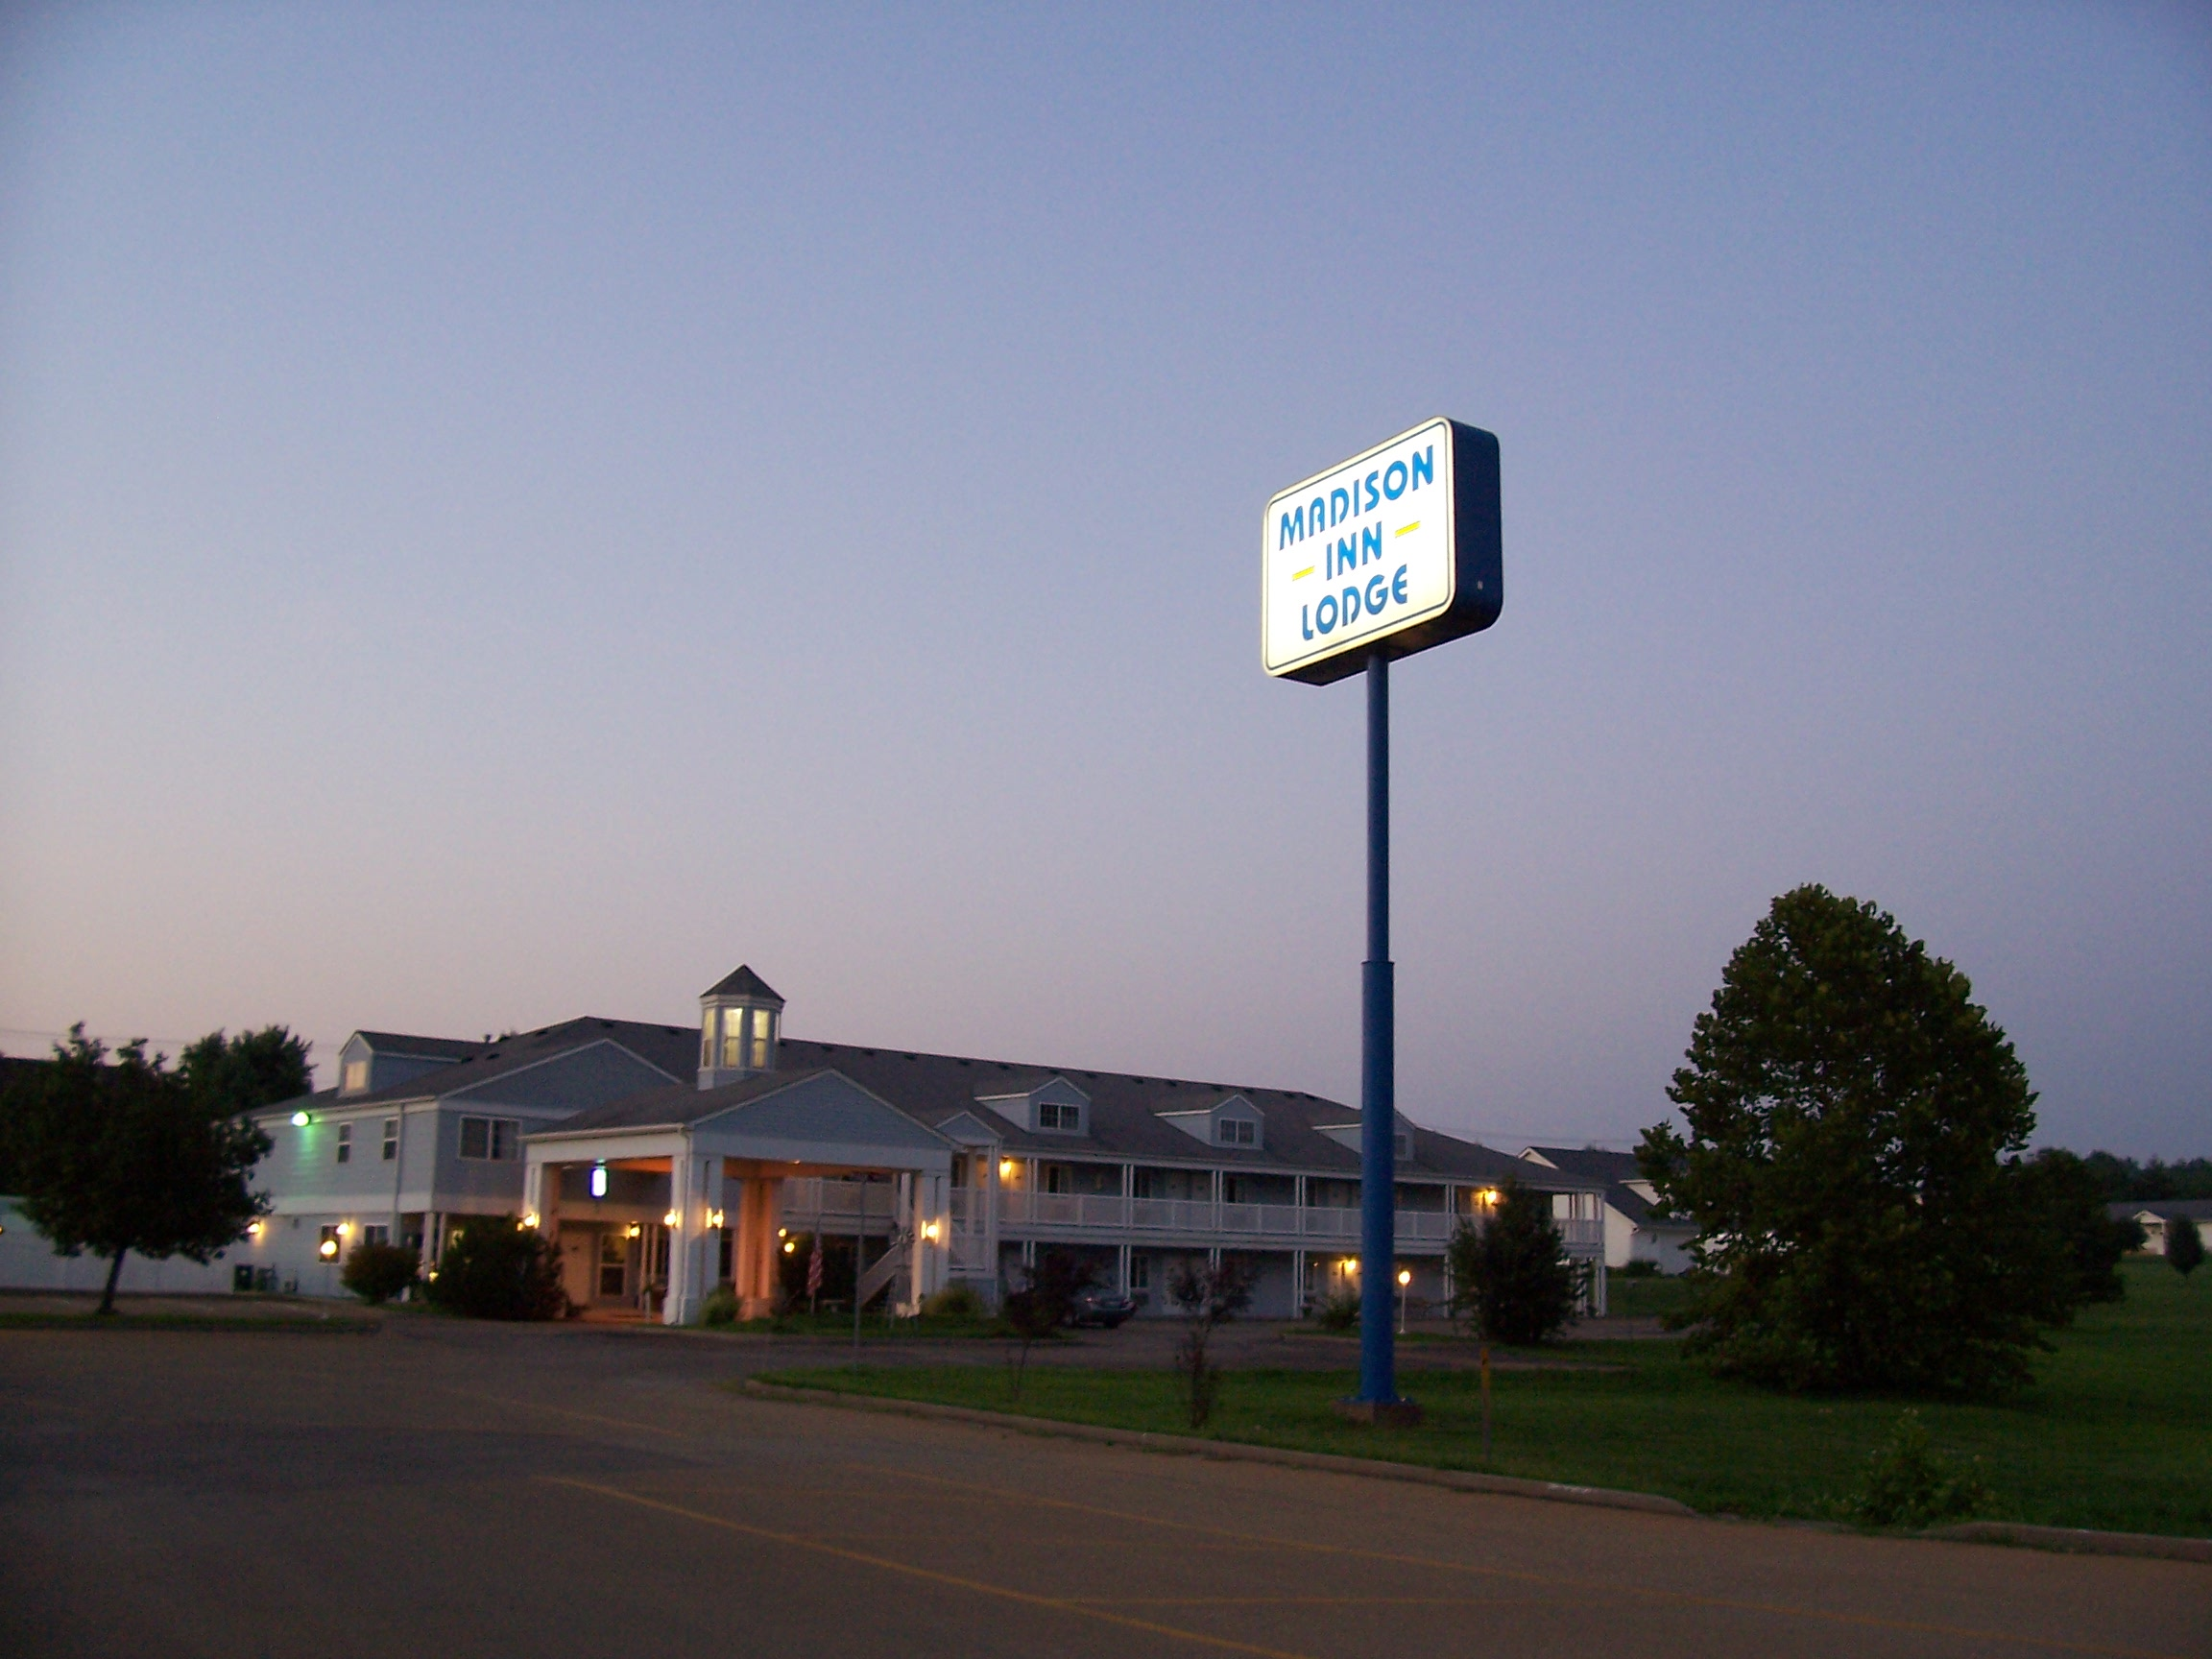 Madison Inn Lodge